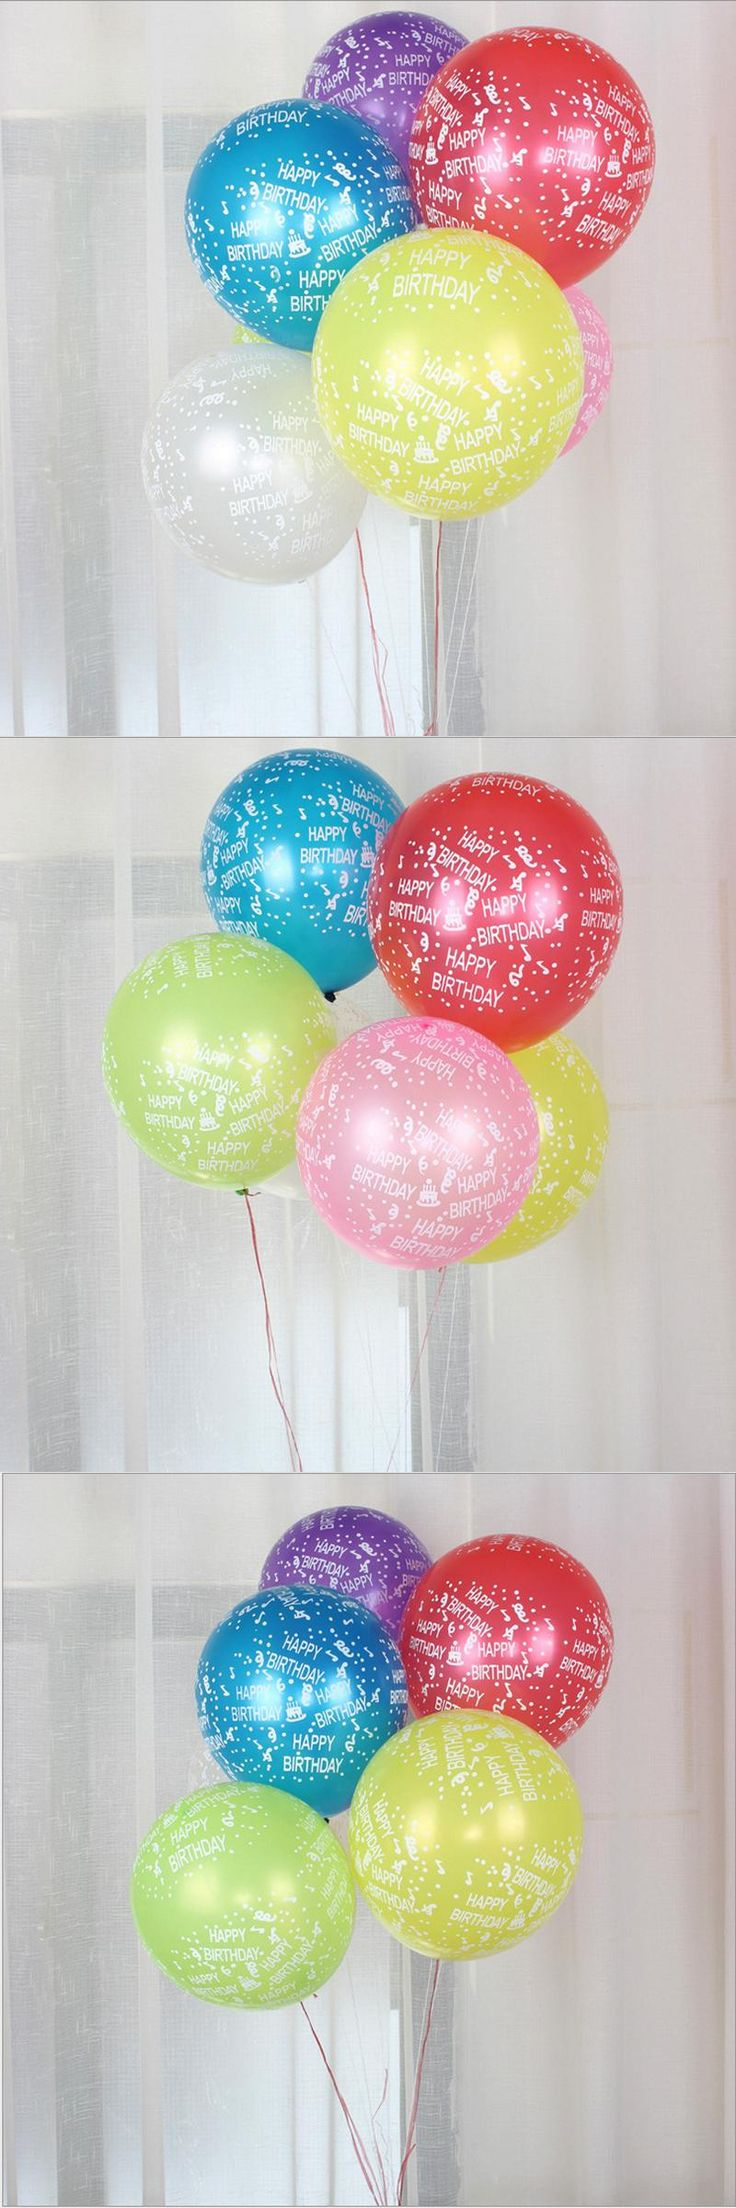 [Visit to Buy] 10 pcs/lot 12 Inch Colorful Happy Birthday Latex Balloons Birthday Party Decoration Kids Cheap Latex Balloons Party Suppliers #Advertisement